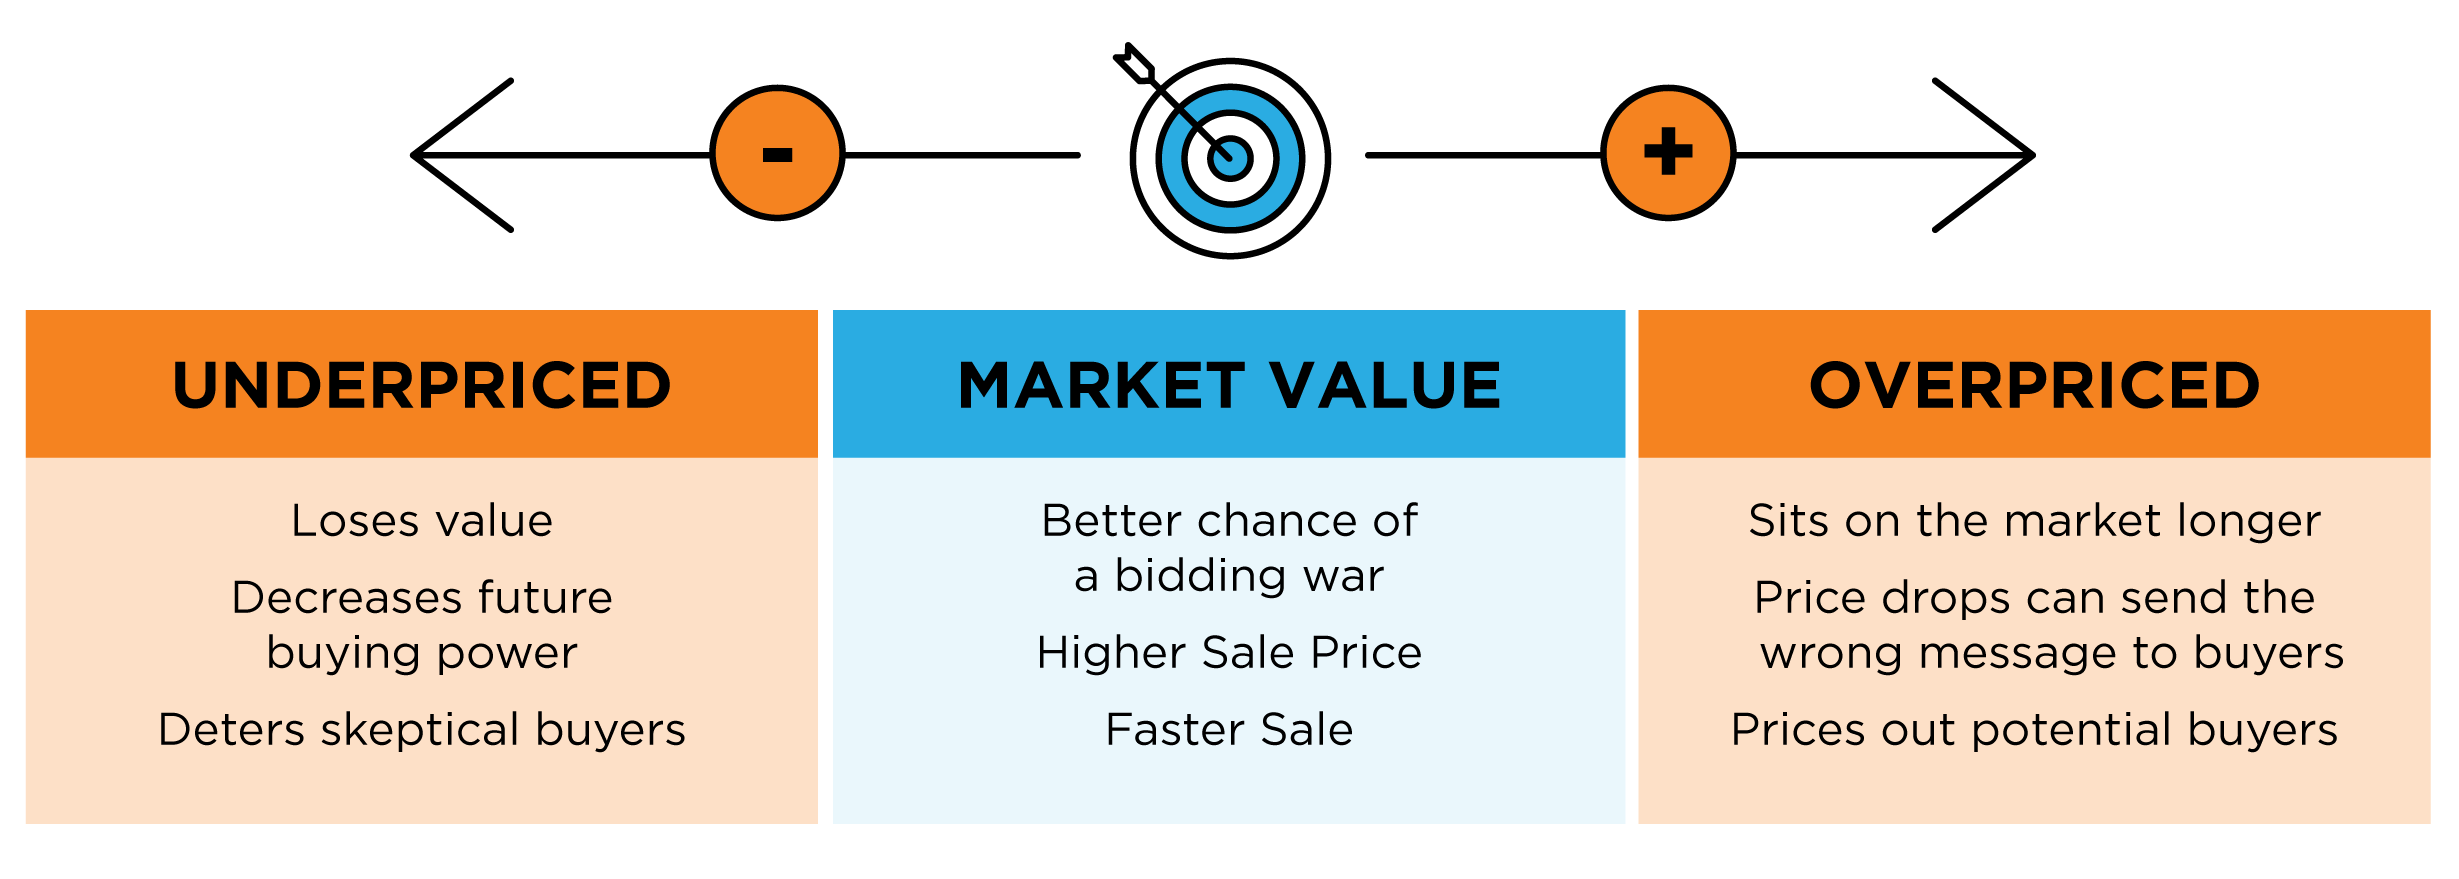 Selling Your House? Make Sure You Price It Right. | MyKCM